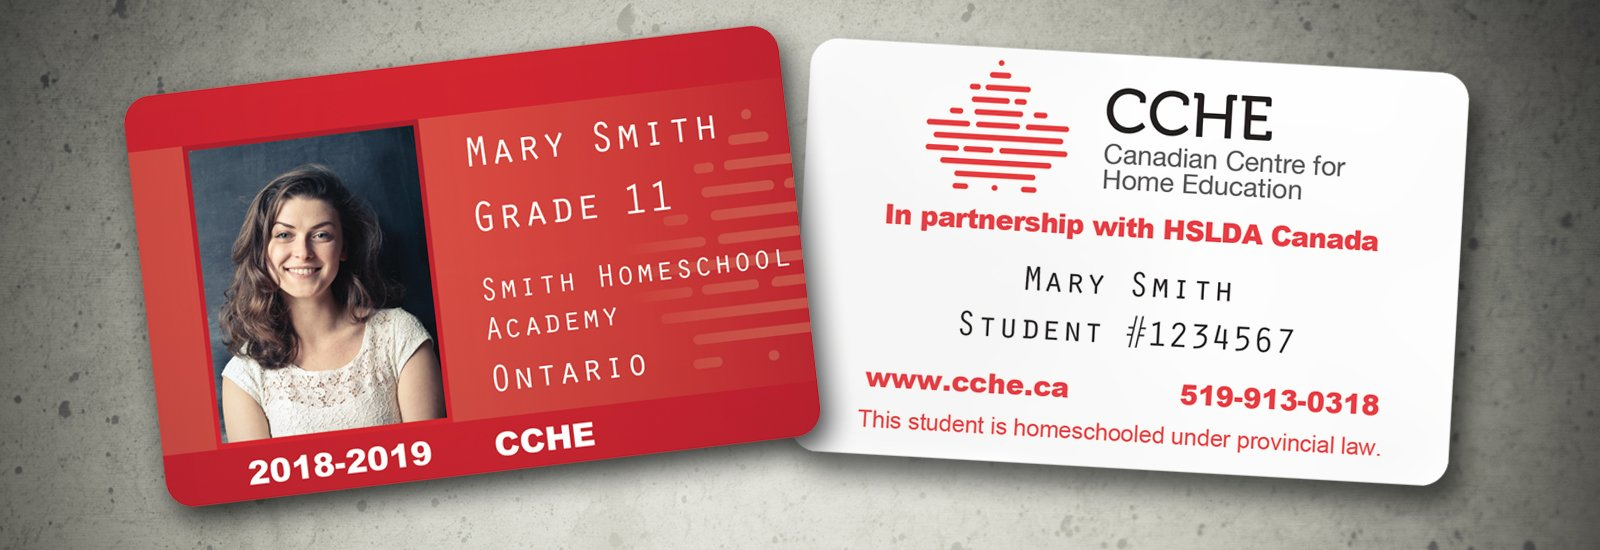 CCHE-Member-Cards-img